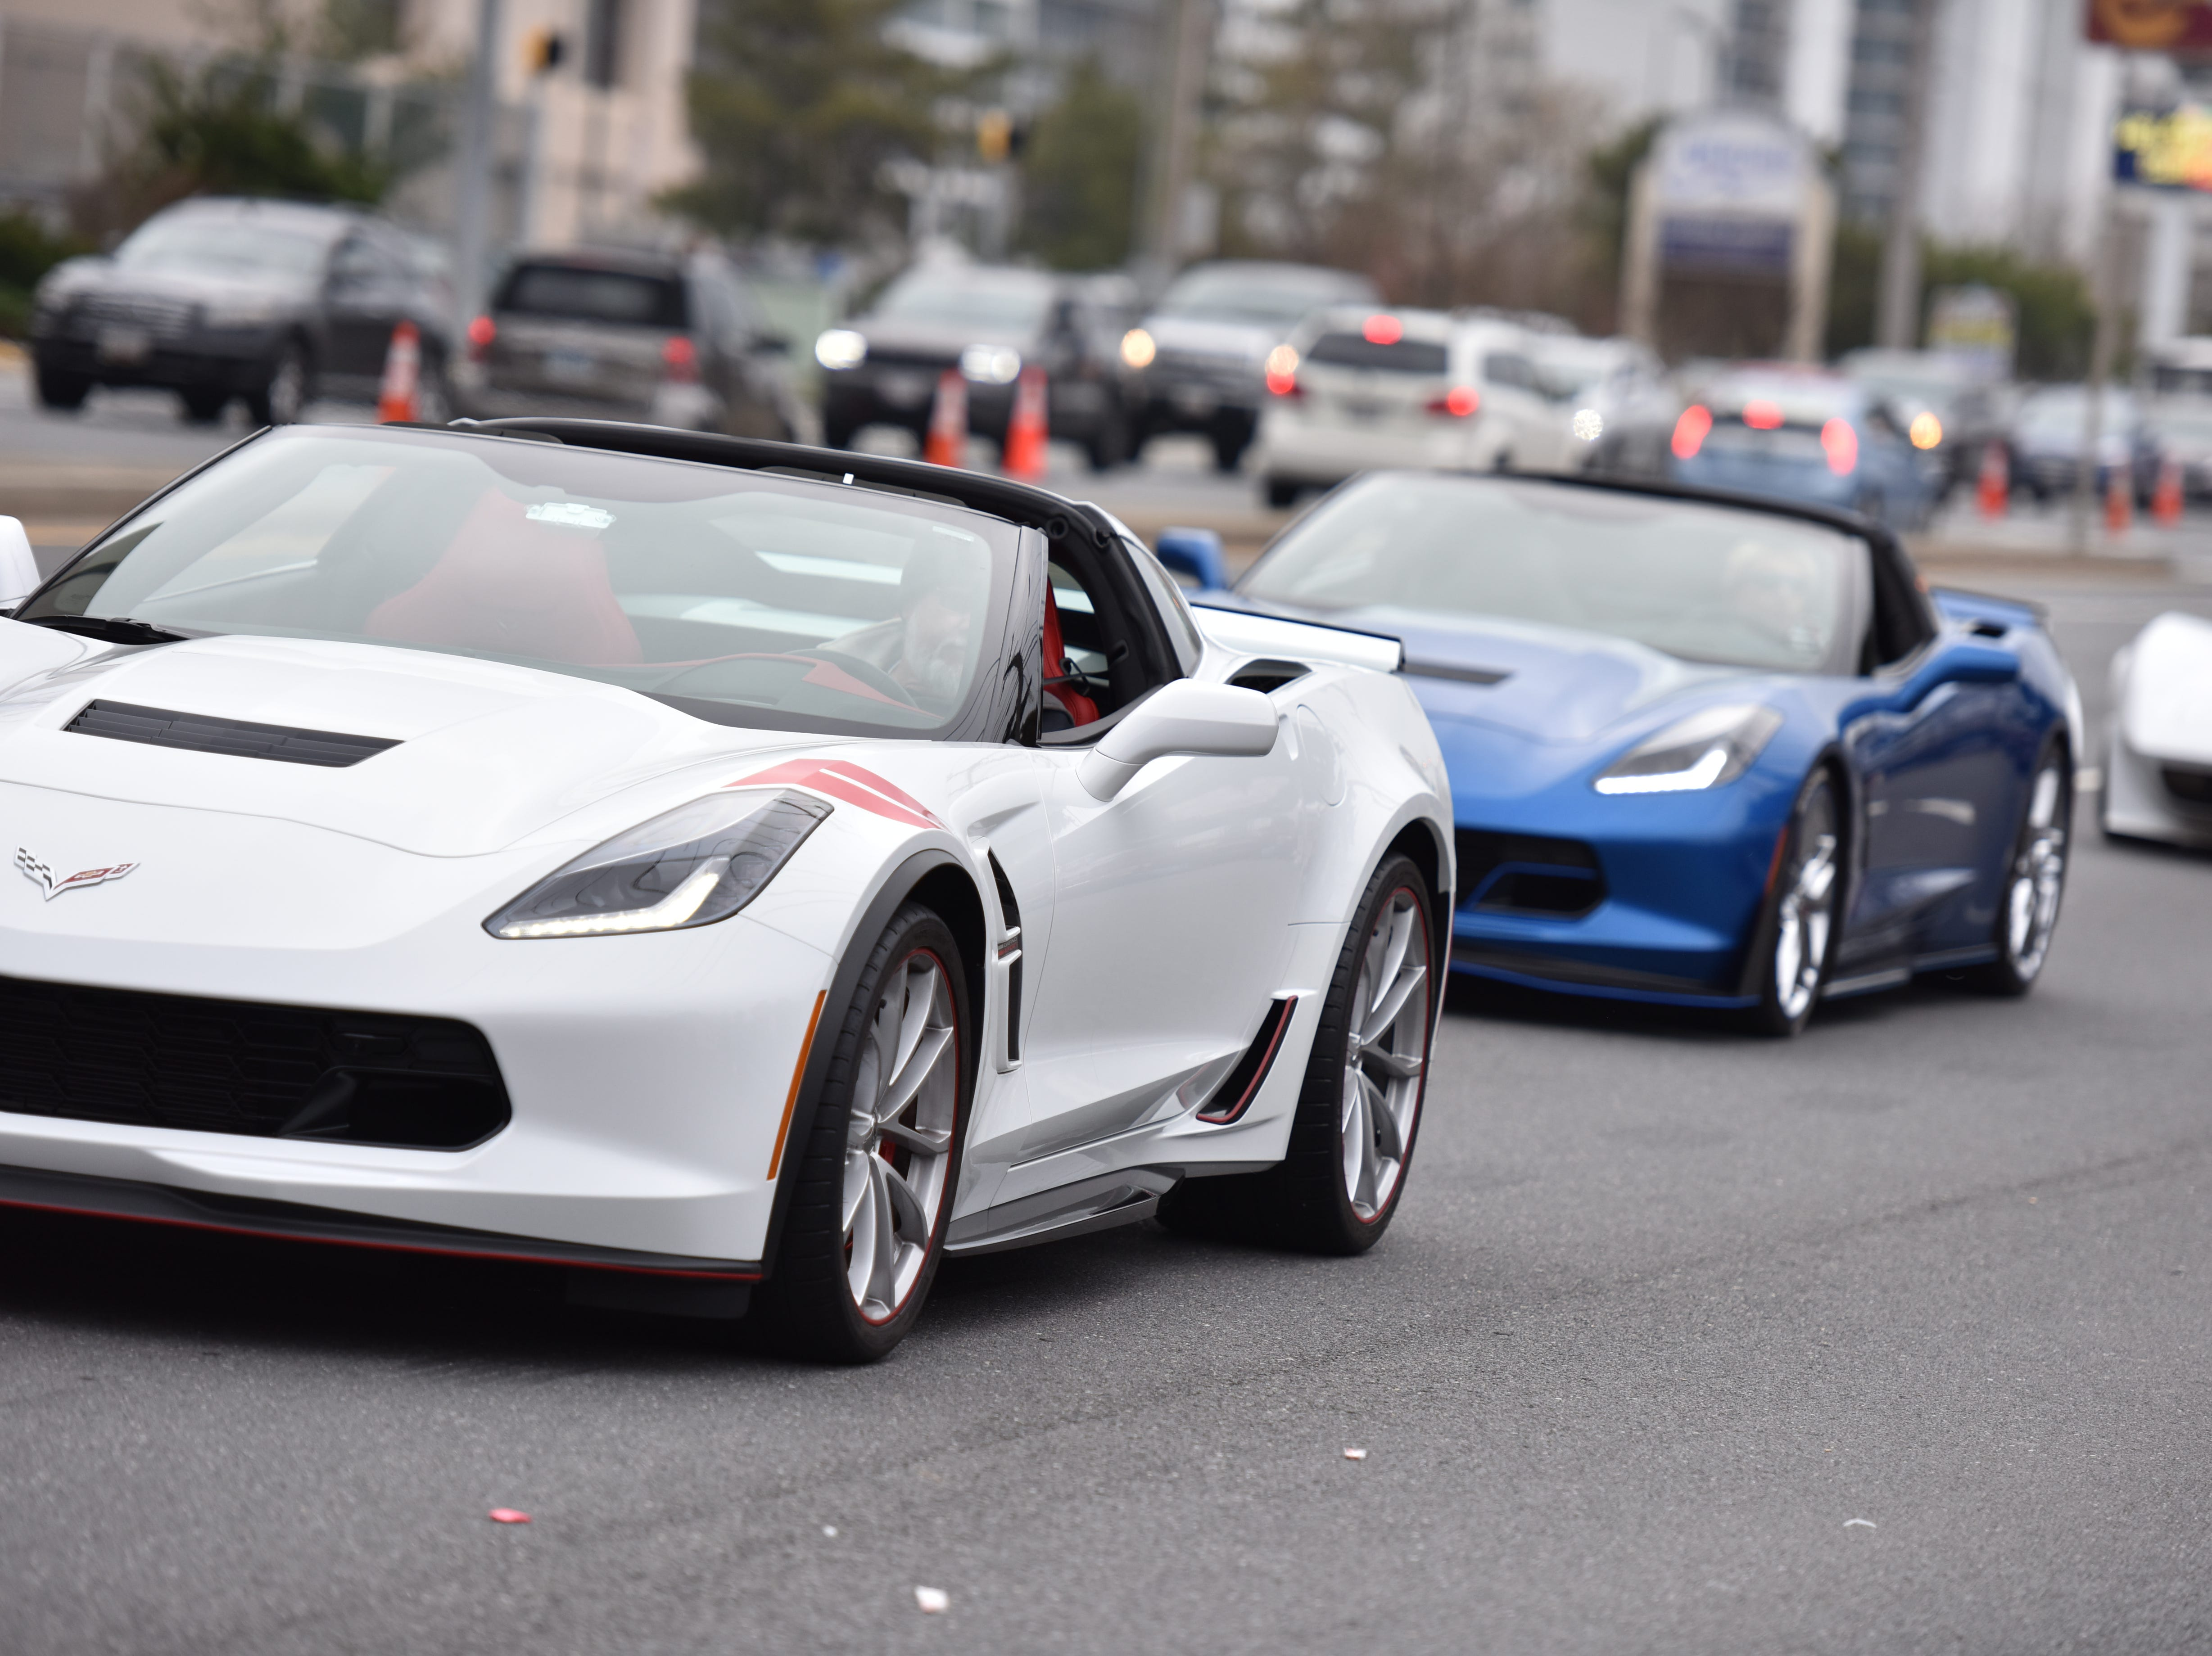 Decorated Corvettes joined in at the Ocean City Chrsitmas parade on Saturday, Dec. 1, 2018.